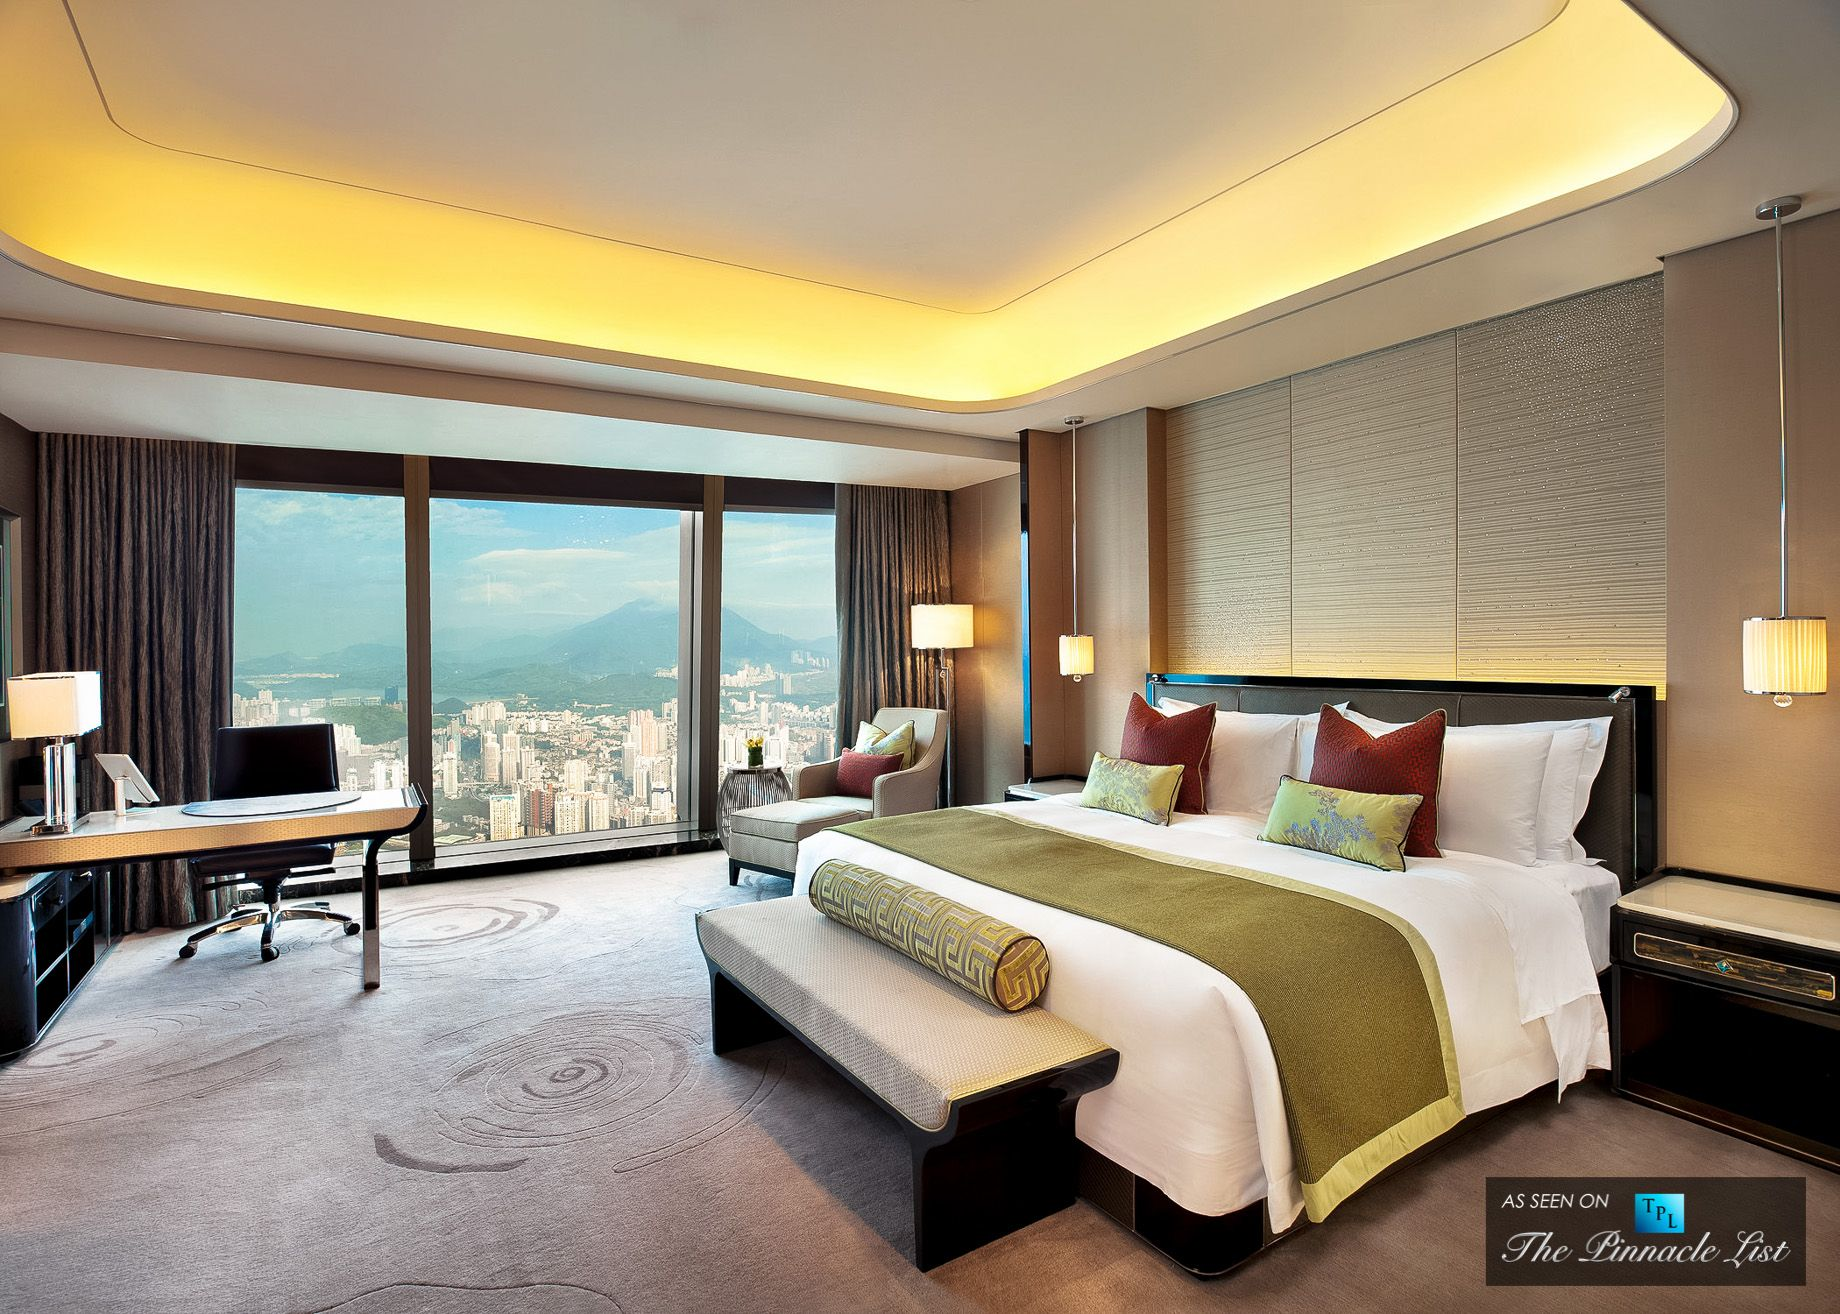 Accommodation details seoul luxury hotel accommodations rooms - Find This Pin And More On Hotel Rooms By Ianne20